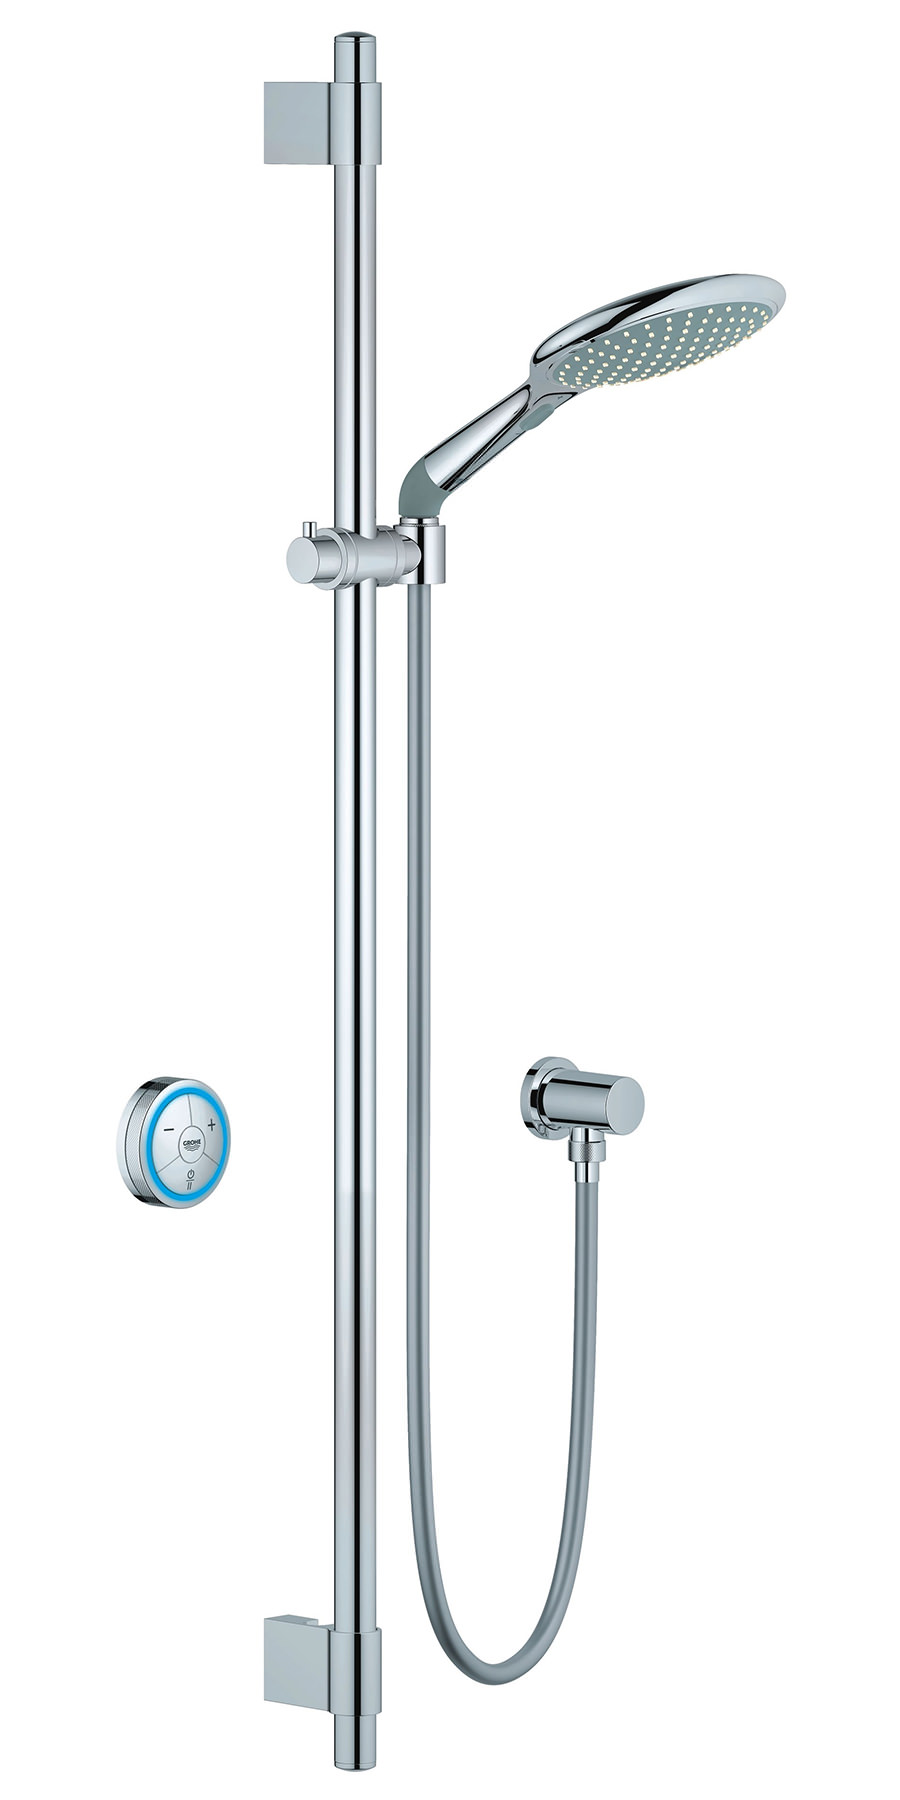 grohe rainshower solo f digital high pressure shower set. Black Bedroom Furniture Sets. Home Design Ideas